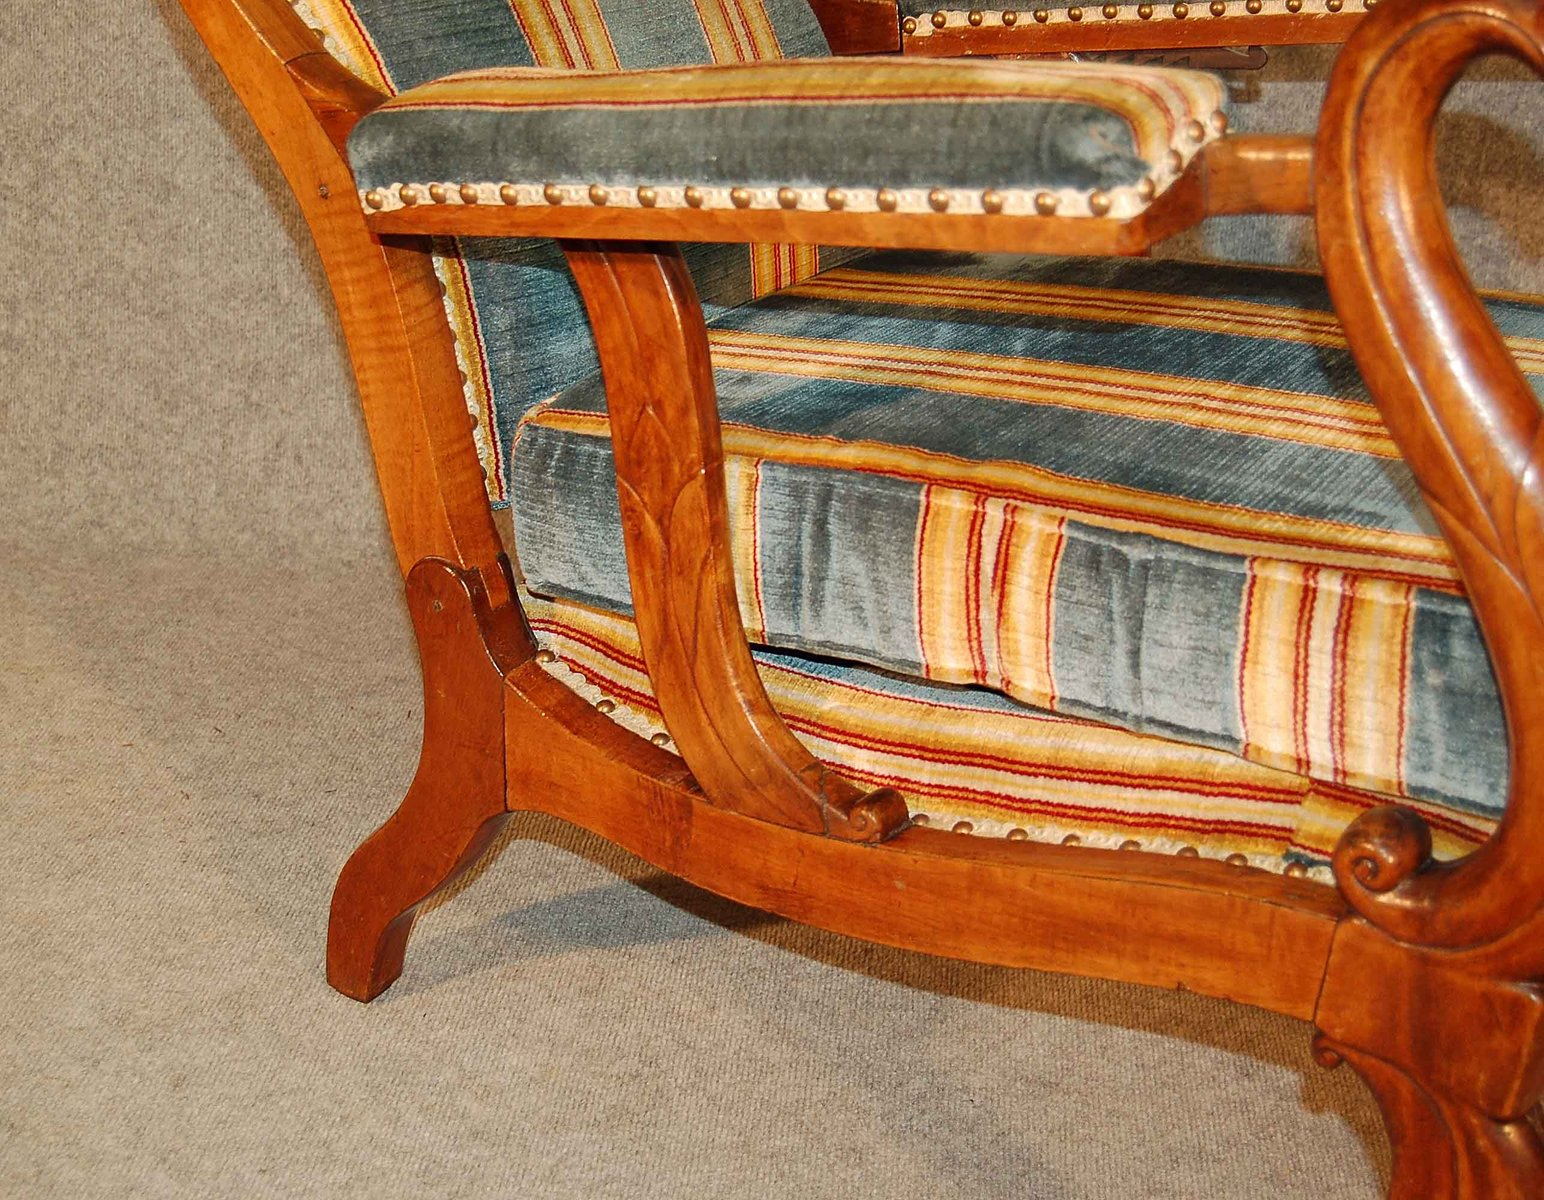 Antique French Reclining Chair - Antique French Reclining Chair For Sale At Pamono